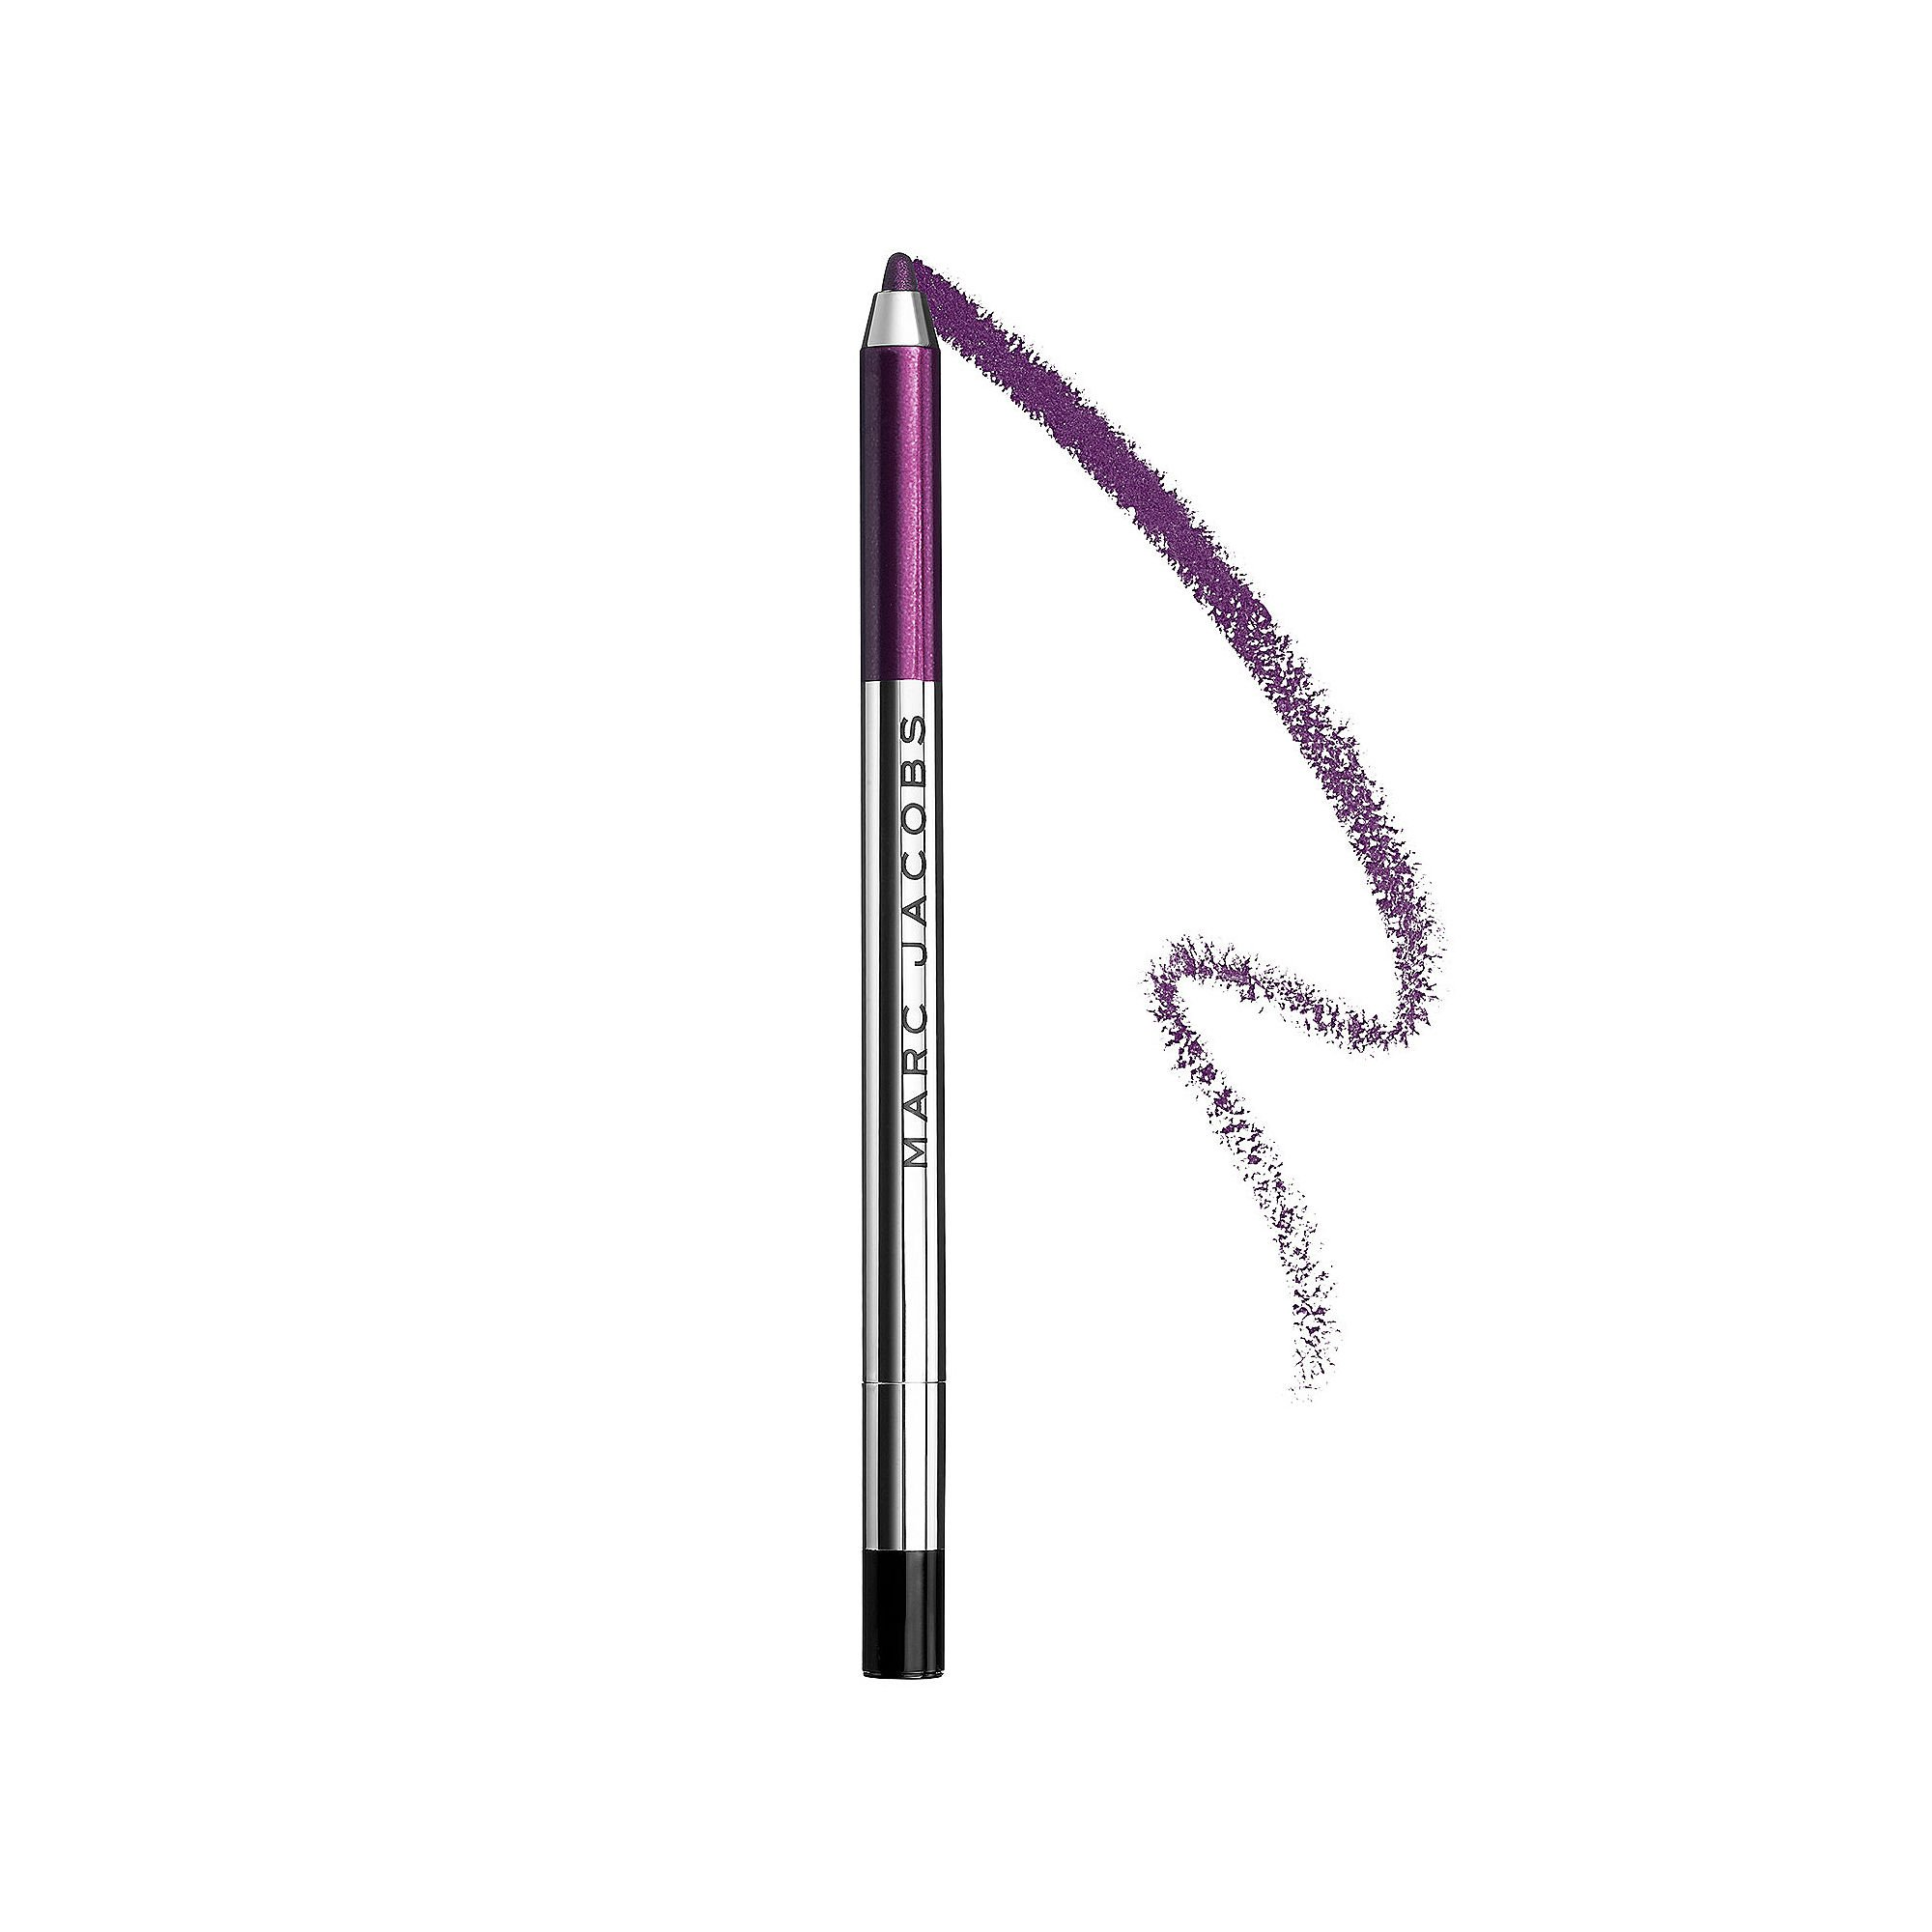 Marc Jacobs Highliner Gel Eye Crayon Plumage #60, Full Size, NEW, SEALED, Professional Makeup by Marc Jacobs